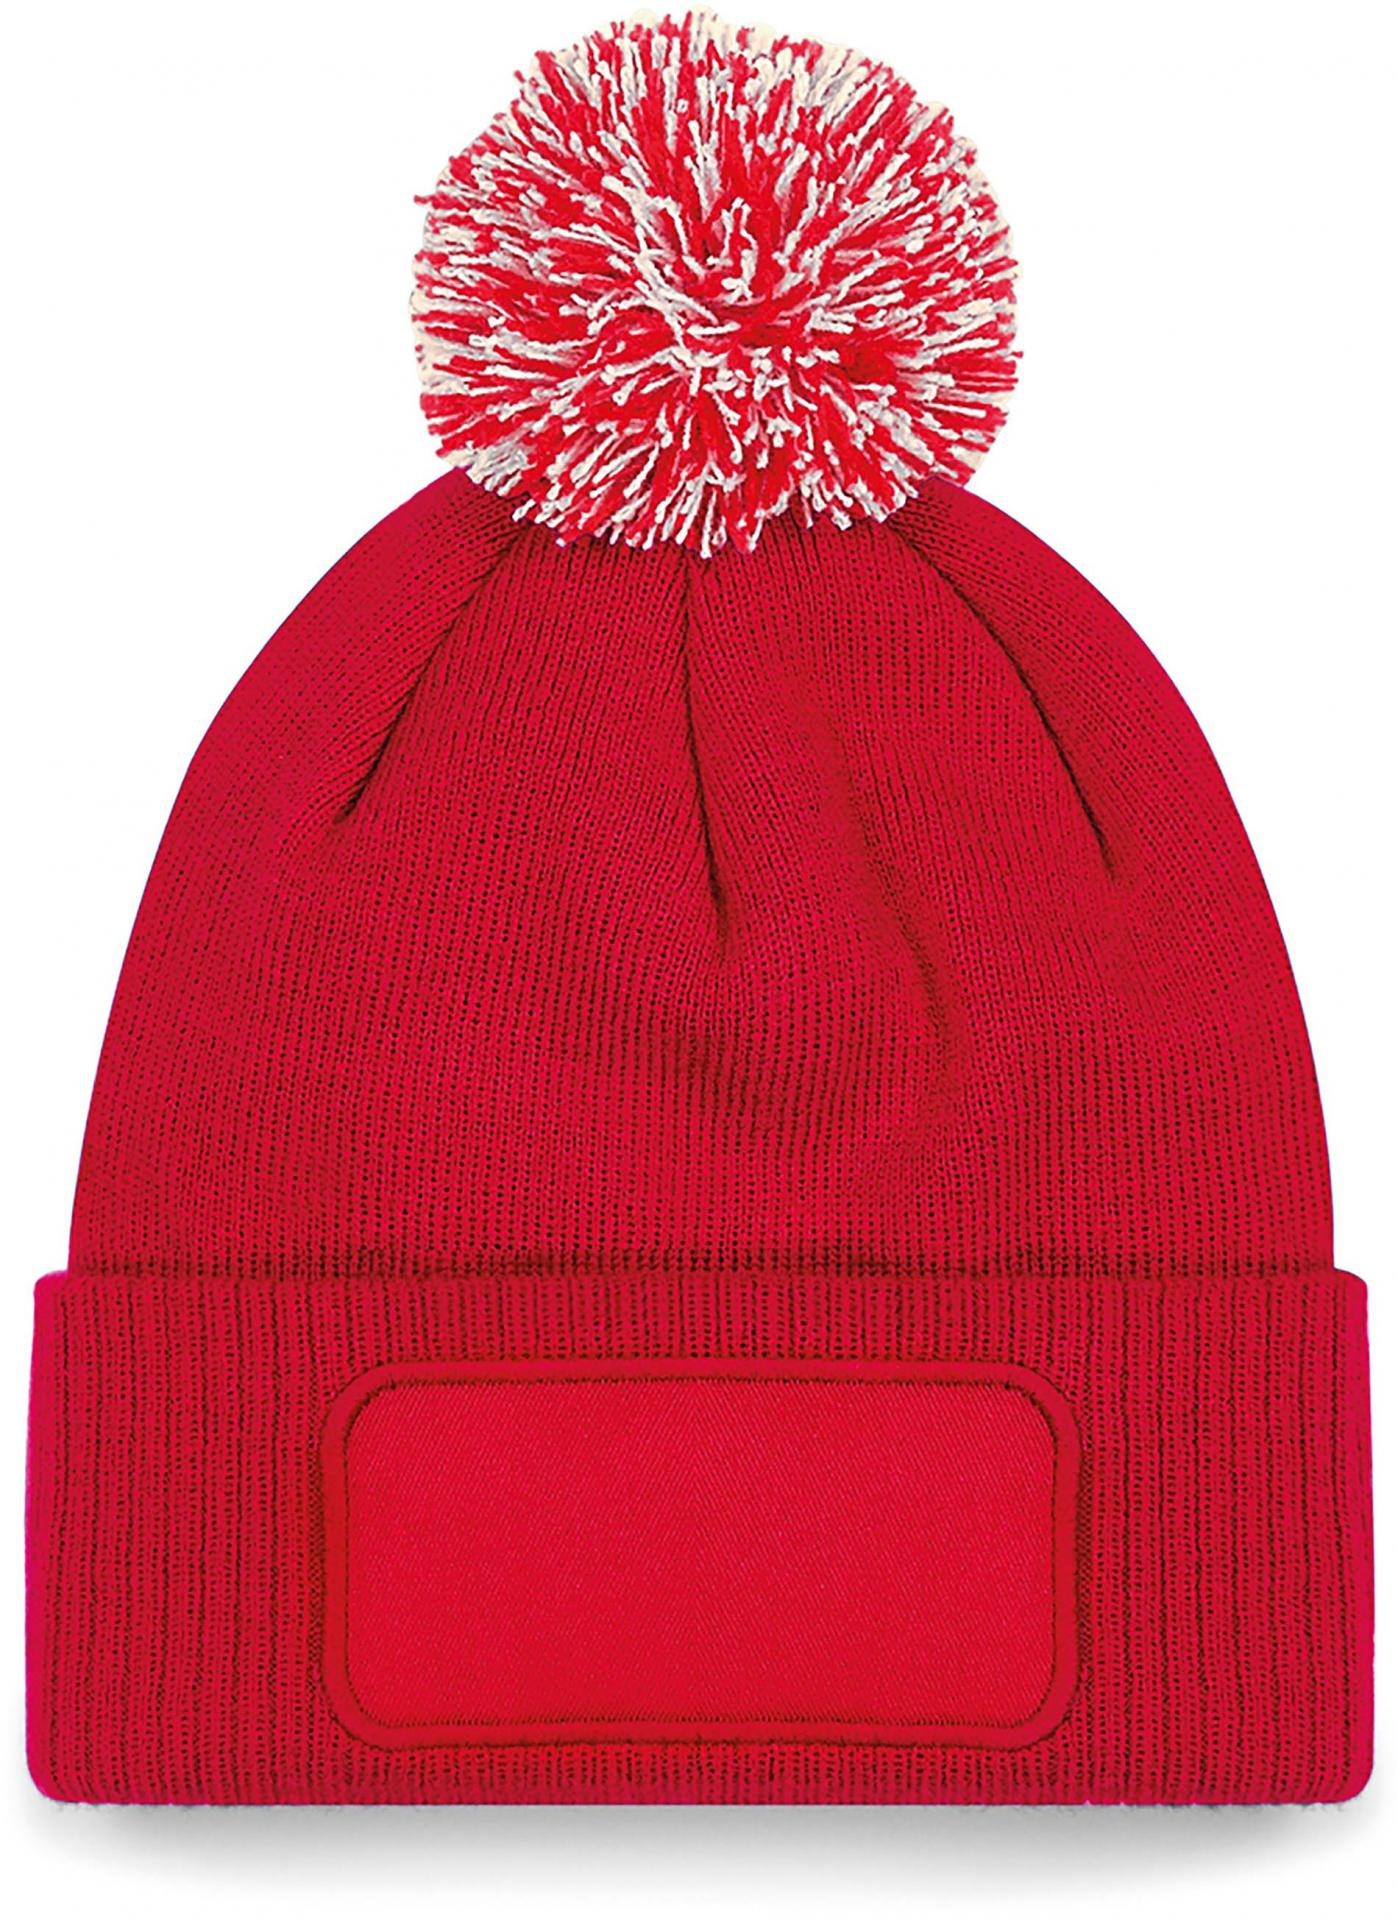 Ps b443 classicred offwhite